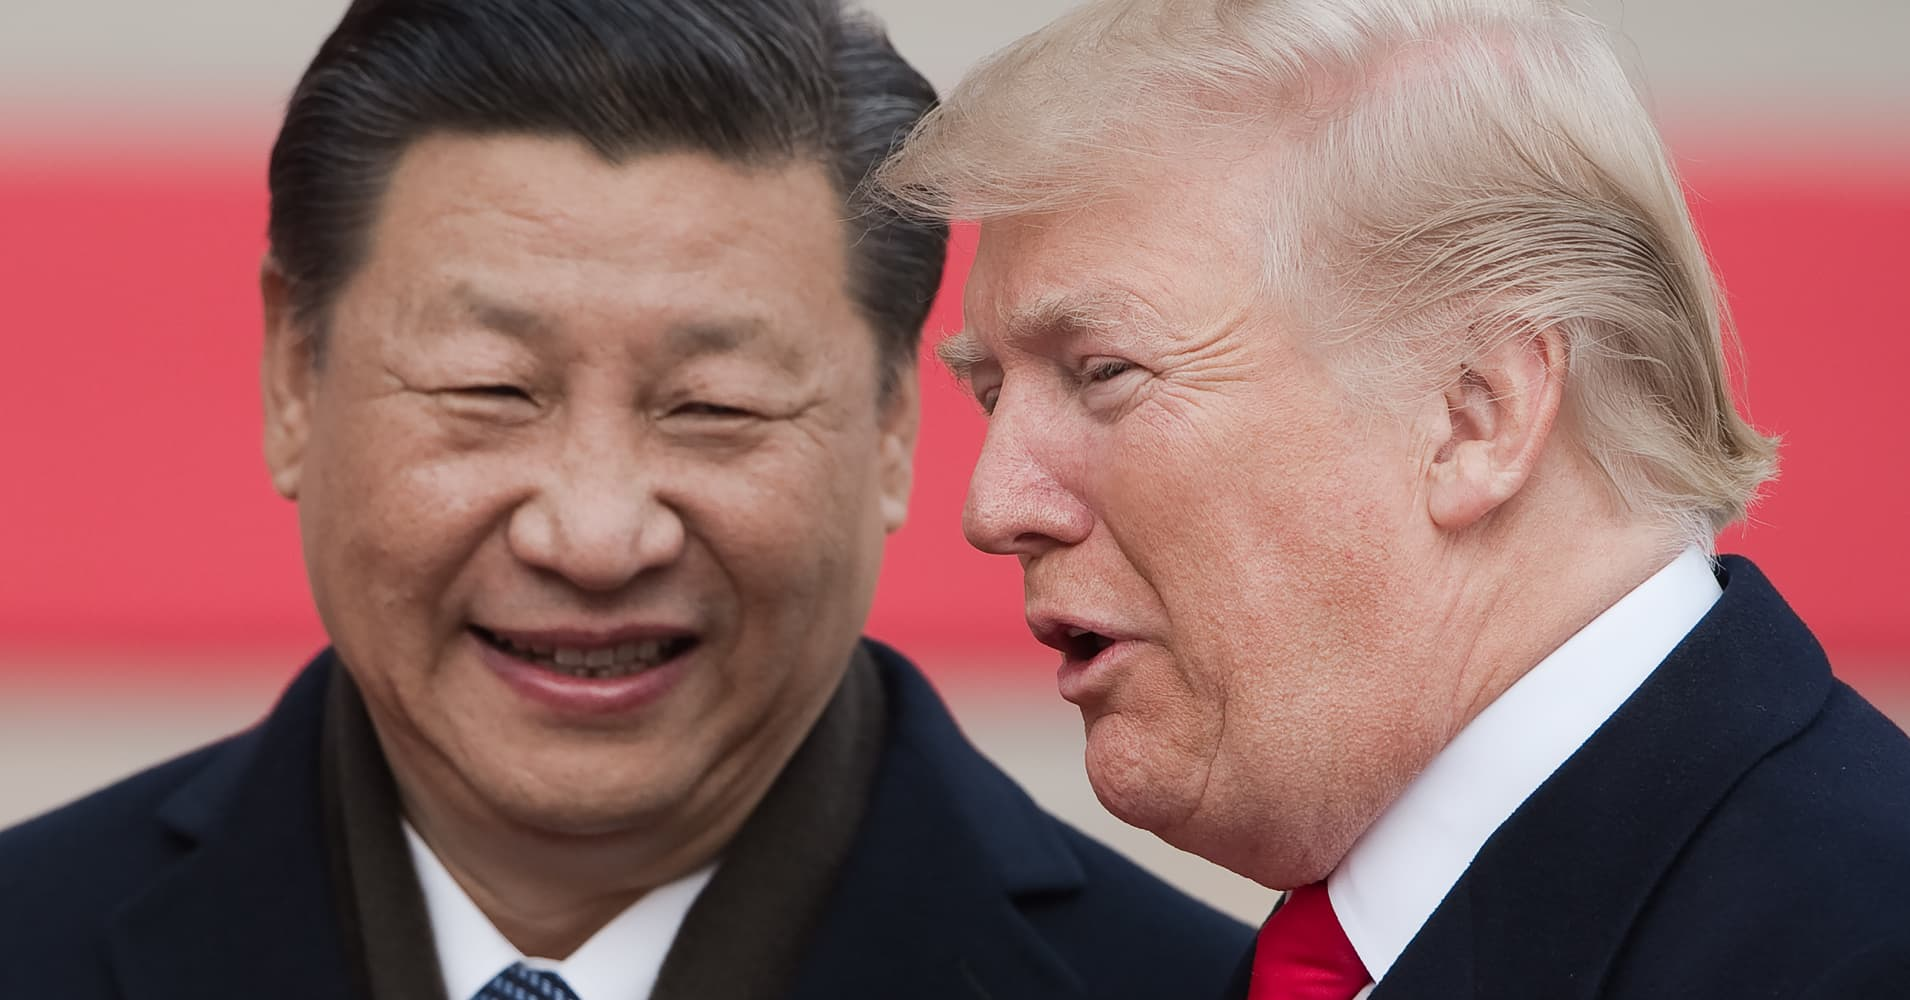 Coca-Cola: Trump and Xi should exchange WeChats to stop trade war